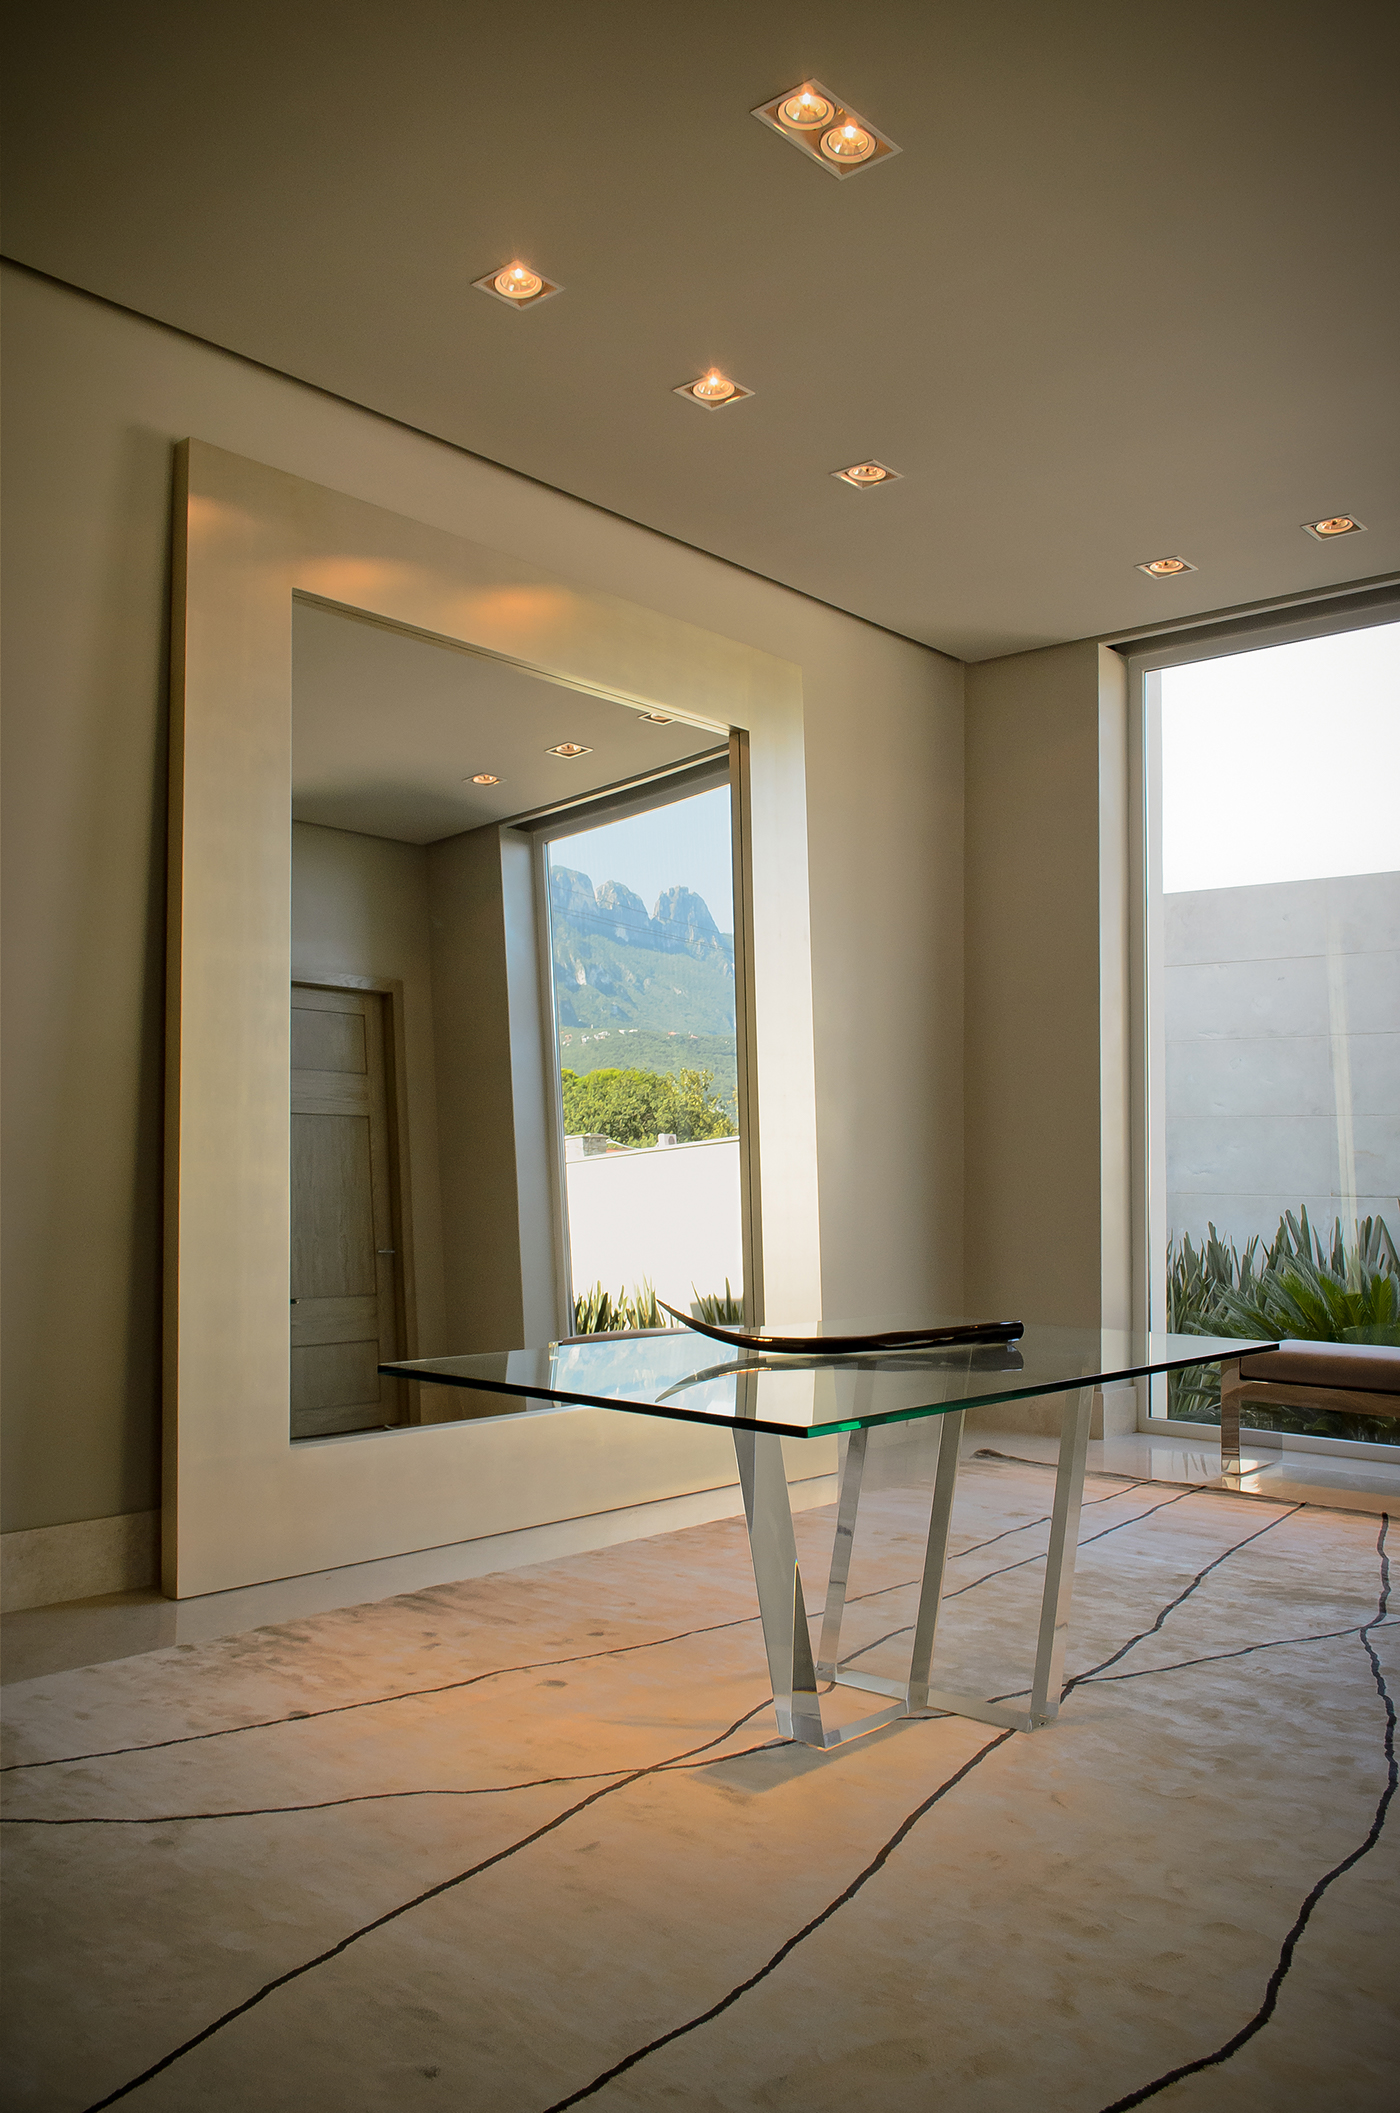 residential,house,Interior,garden,landscaping,mexico,Marble,wood,exterior,kitchen,Lobby,living room,stairs